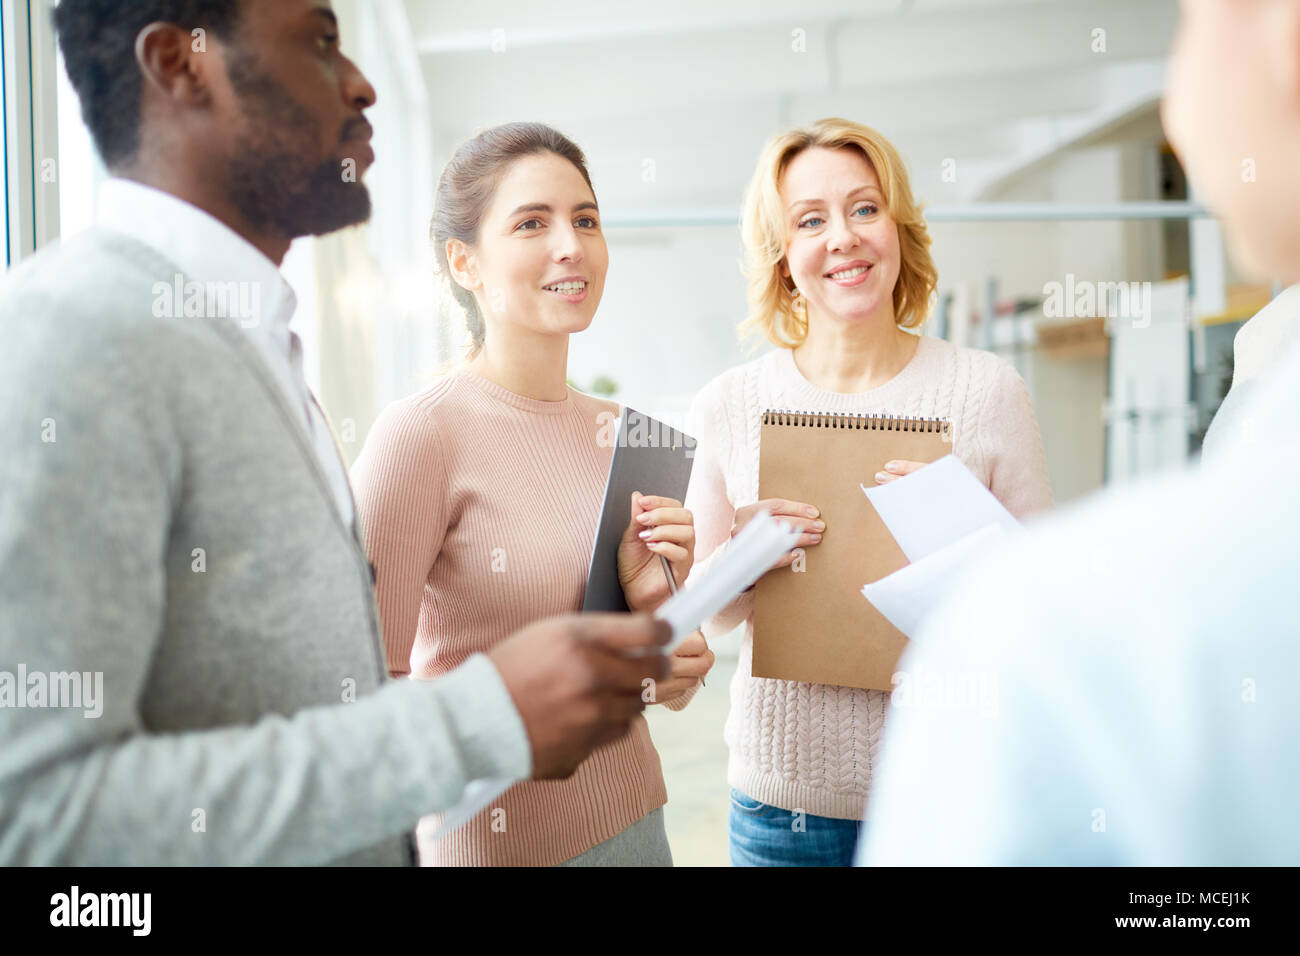 Enthusiastic team of managers holding clipboards and documents in hands while having productive project discussion at spacious open plan office - Stock Image